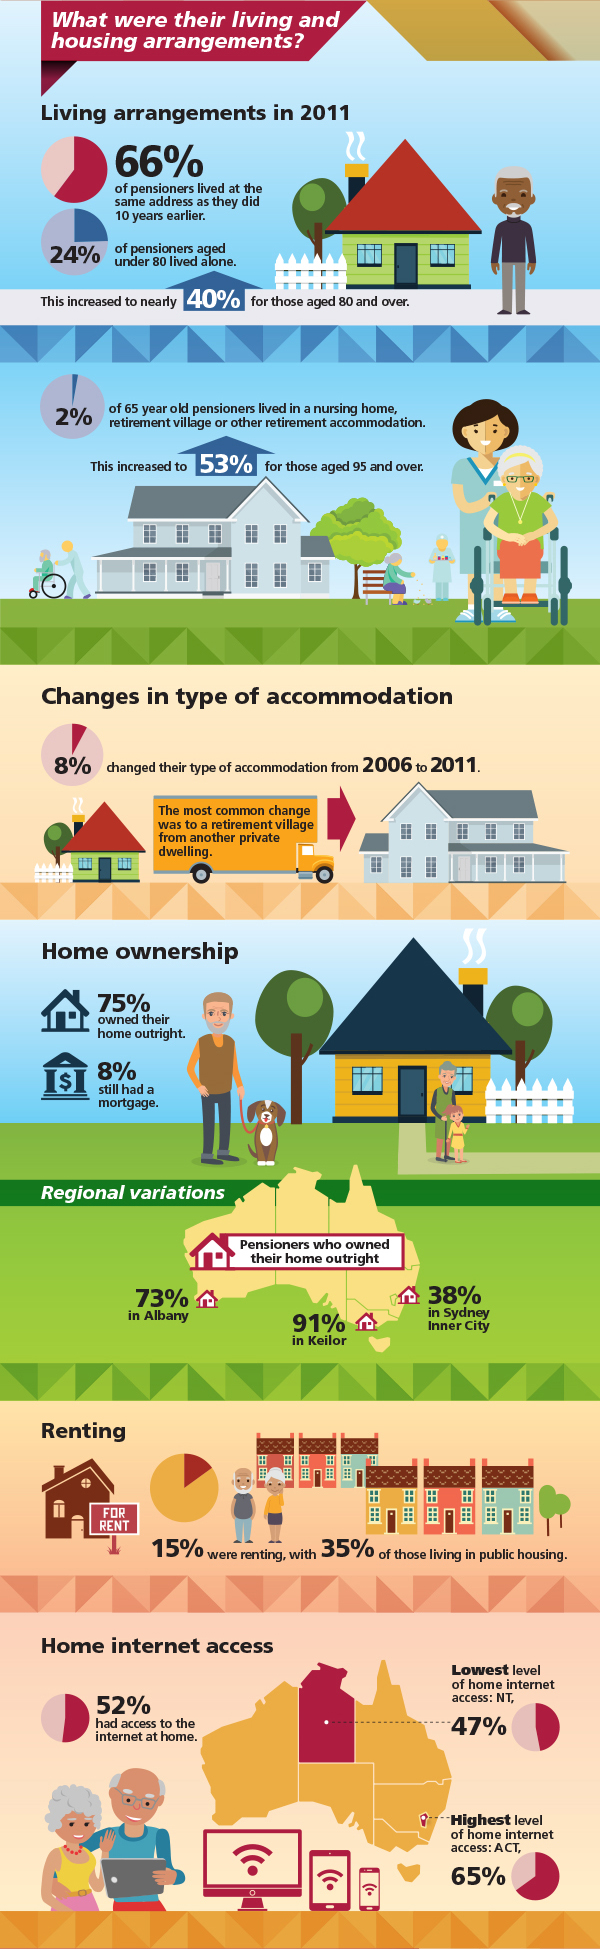 Image: Infographic about the living arrangements of Australians on the Age Pension. Data repeated in text below